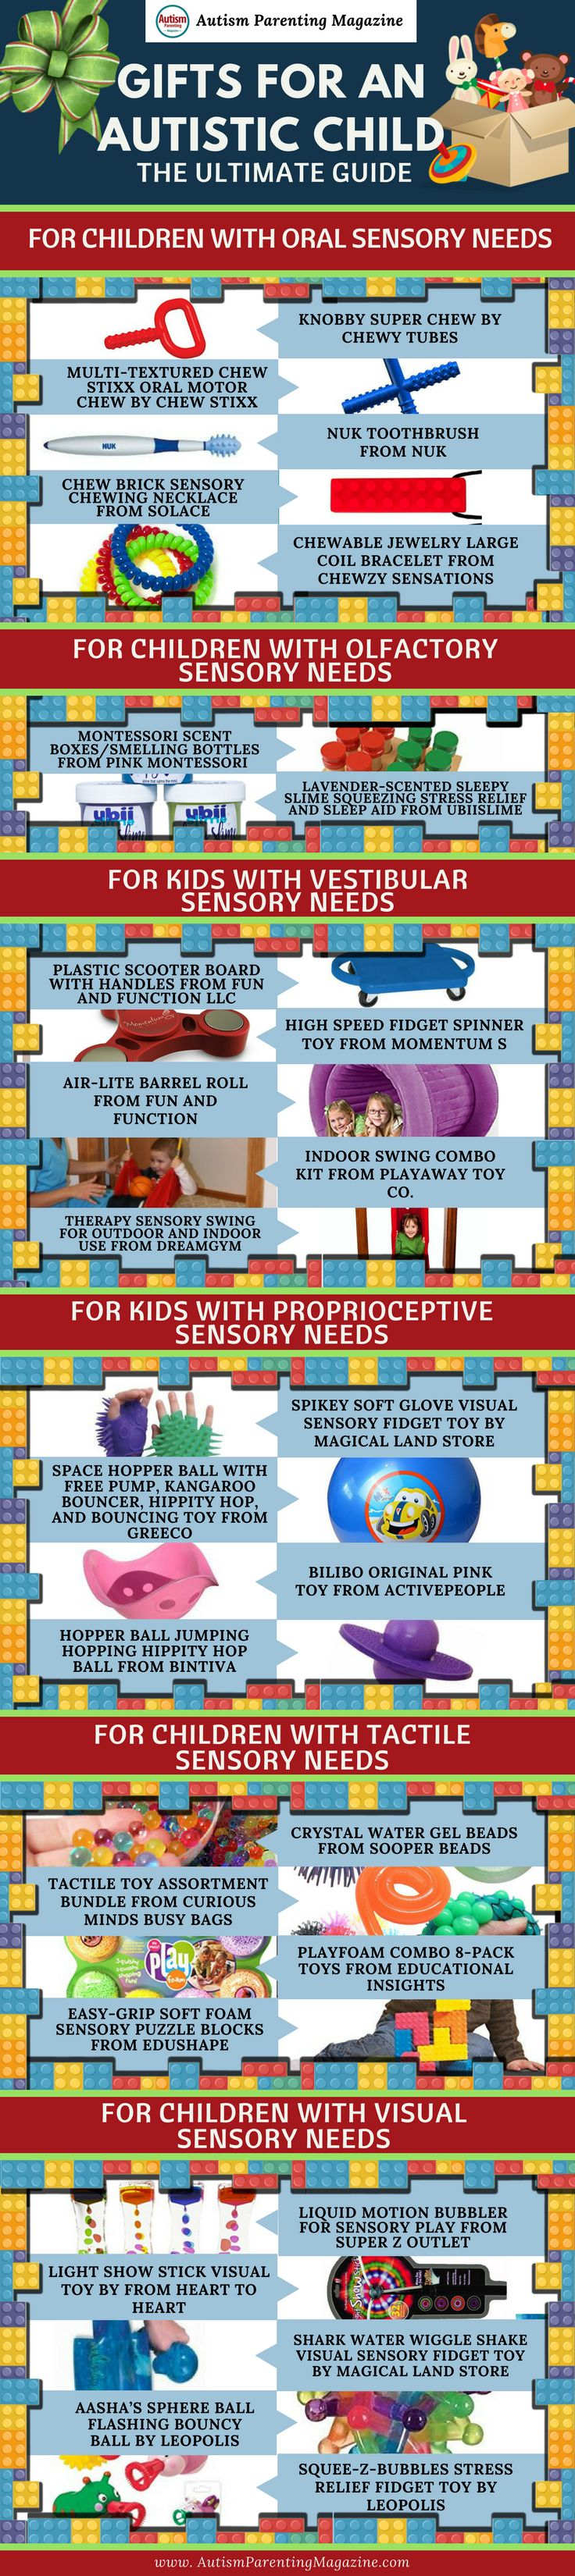 """Finding """"just the right gift"""" for a child with autism spectrum disorder (ASD) is not always a simple task. Due to the various sensitivities and needs that many children with autism may have, it's important to carefully consider what kinds of gifts are a good fit."""